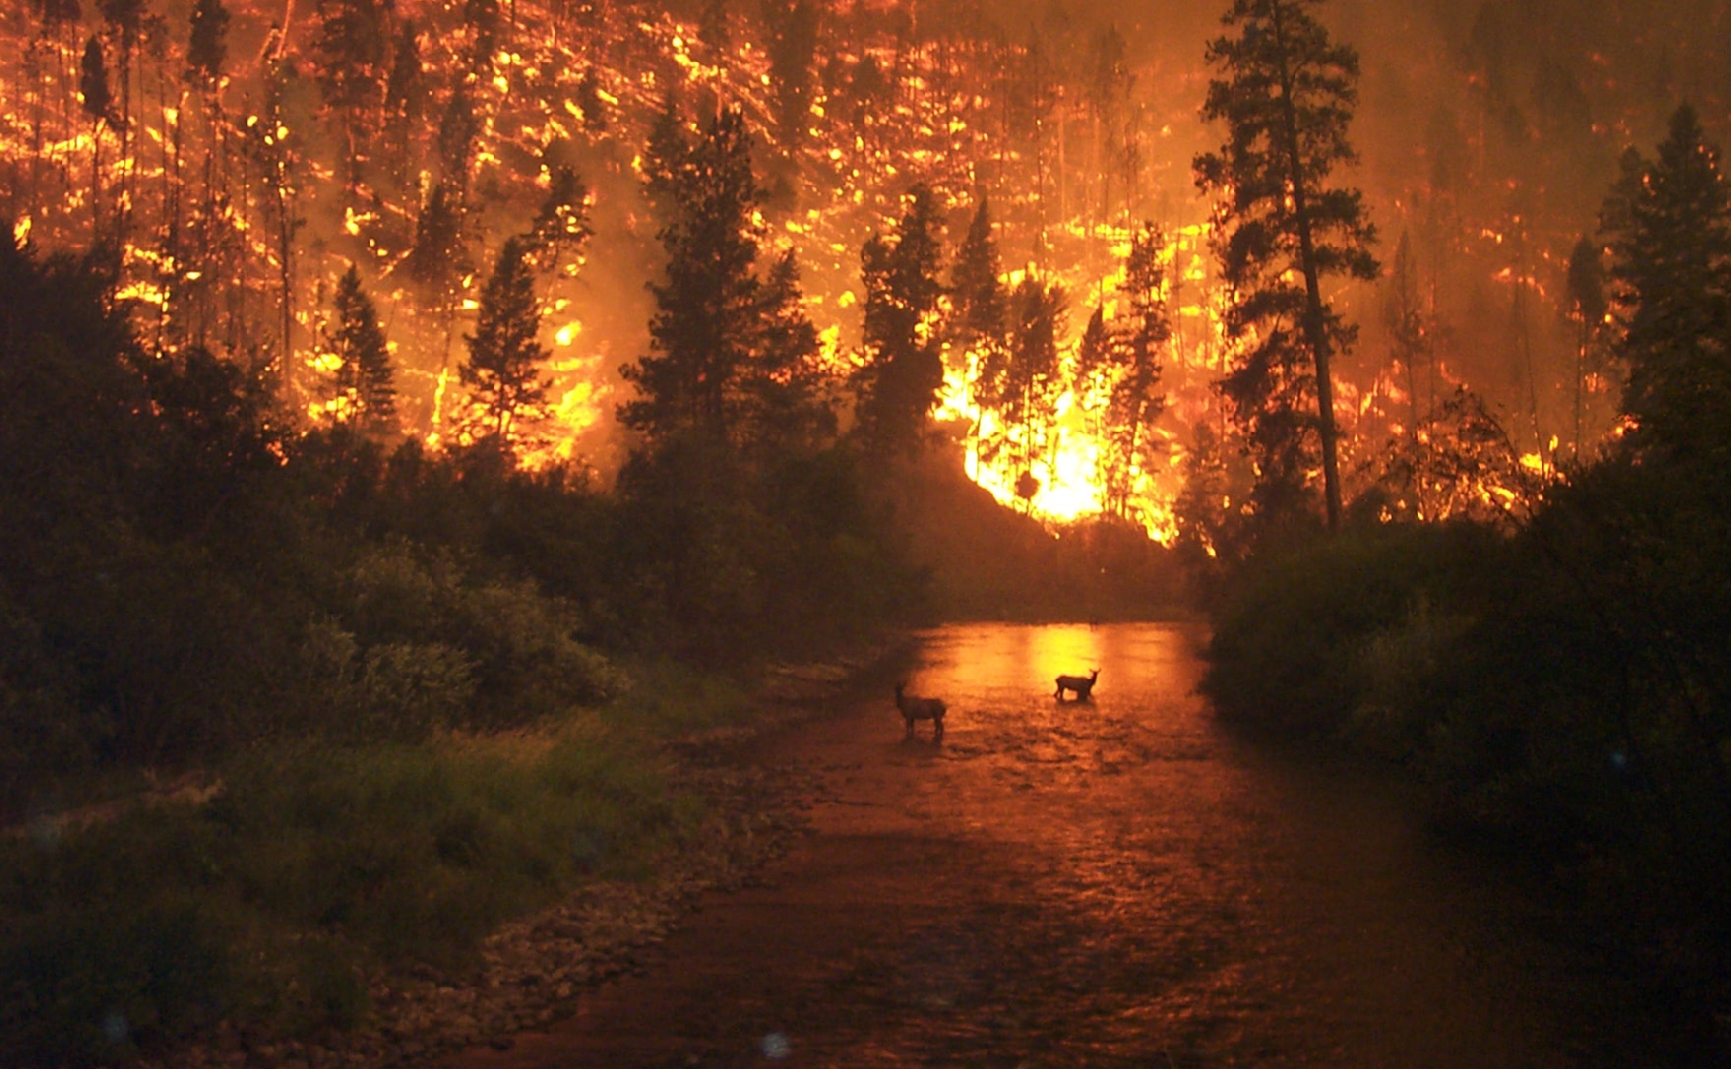 High Resolution Images File Deerfire high res jpg